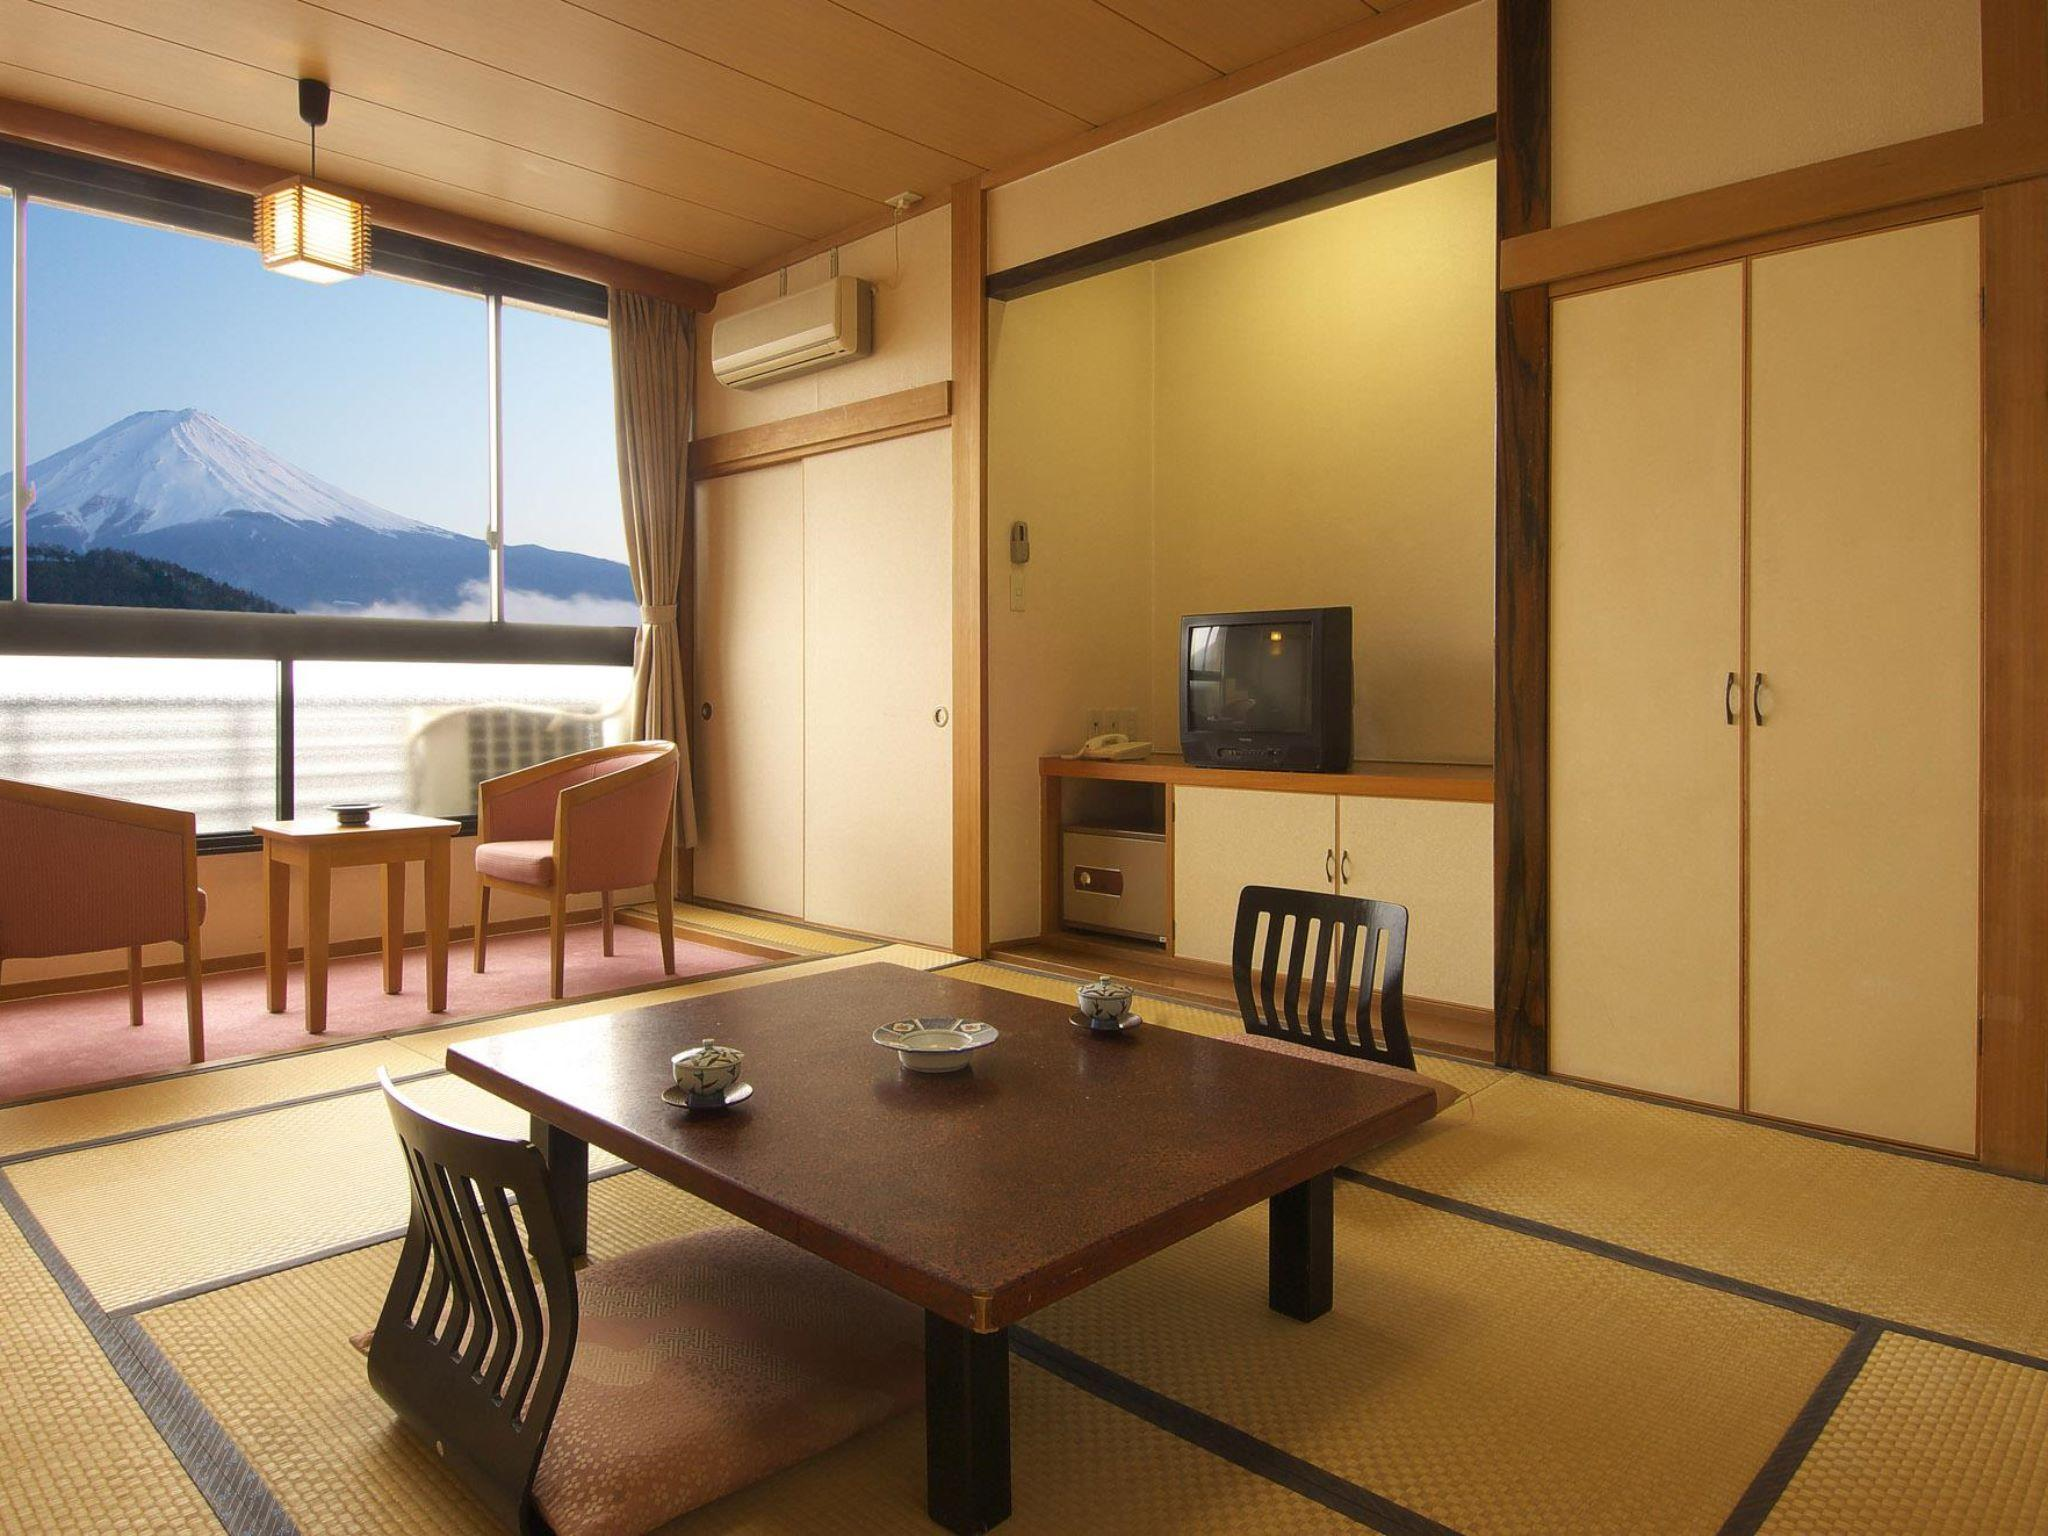 Mount Fuji View Japanese Style Room